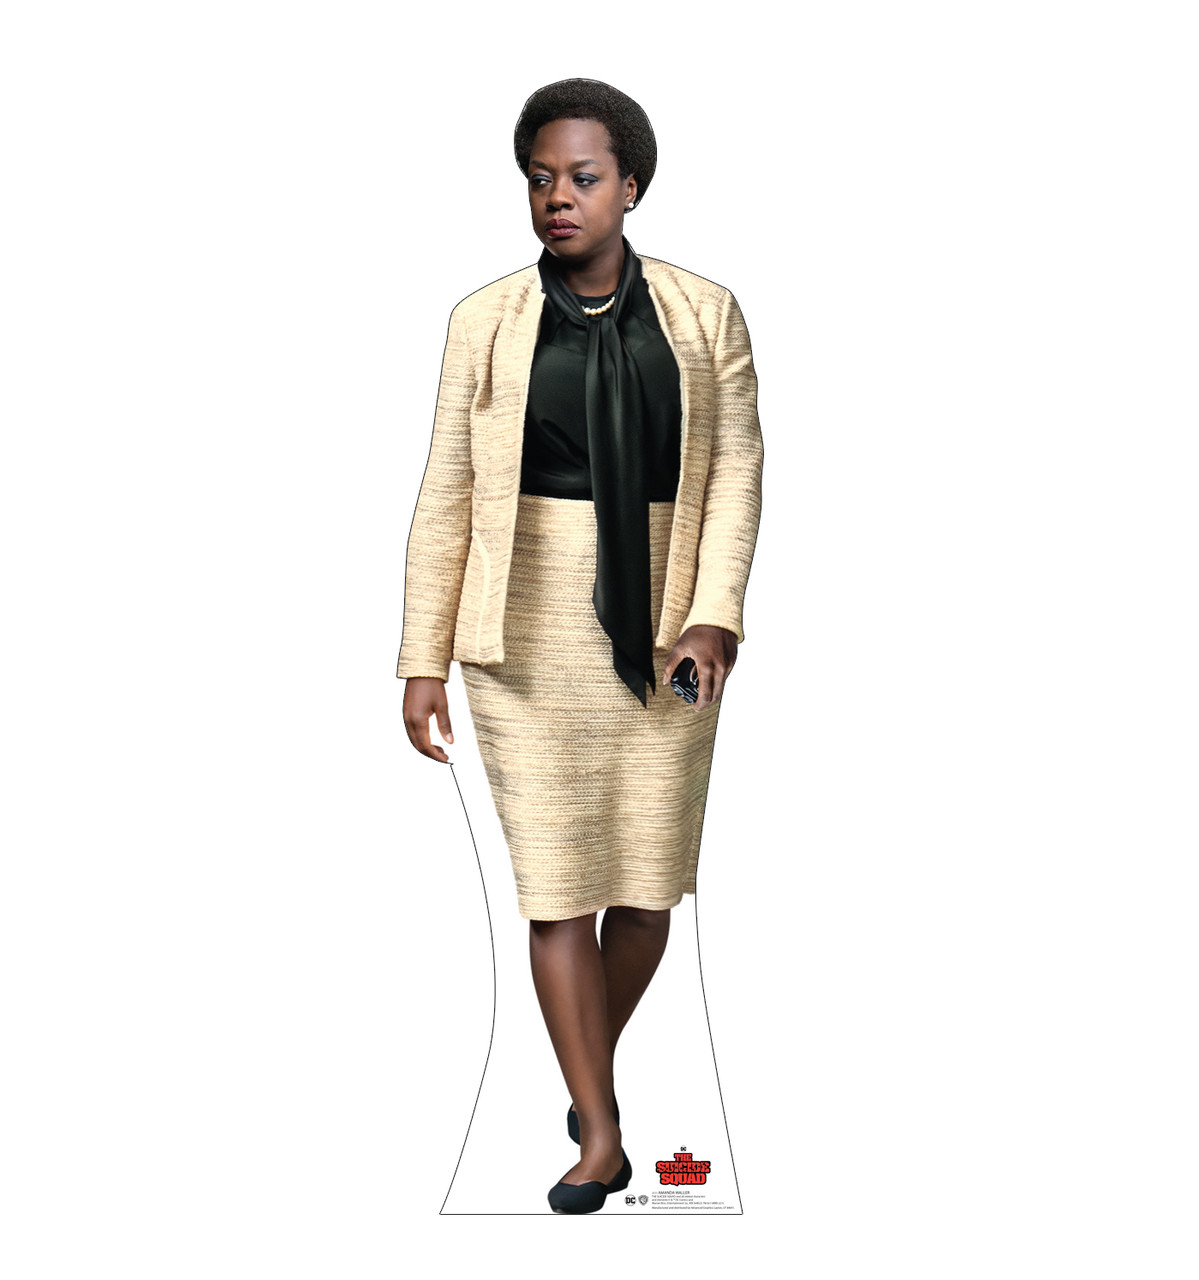 Life-size cardboard standee of Amanda Waller from Suicide Squad 2.